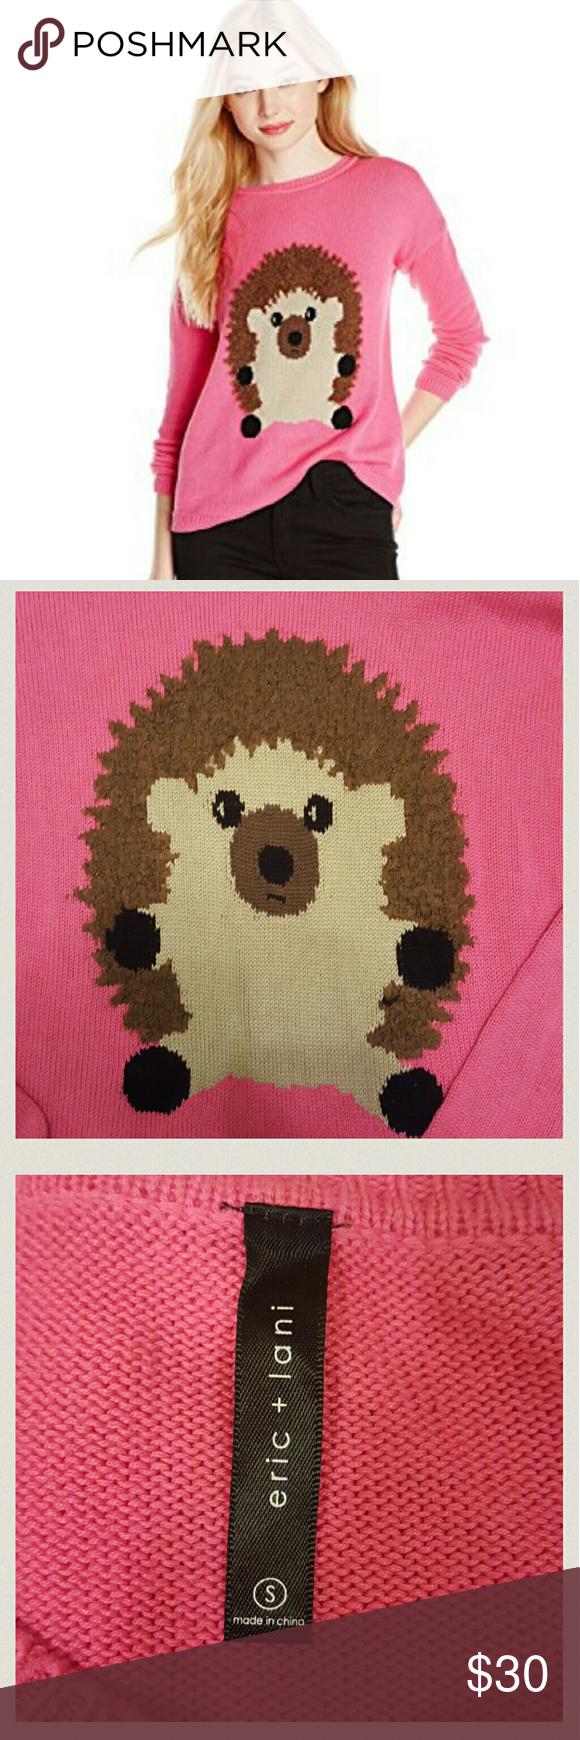 Eric & Lani Hedgehog Sweater Super fun and adorable pink sweater featuring a hedgehog!! Material is 60% cotton and 40% viscose. Machine washable. No stains, holes, etc. Very little pilling. Eric & Lani Sweaters